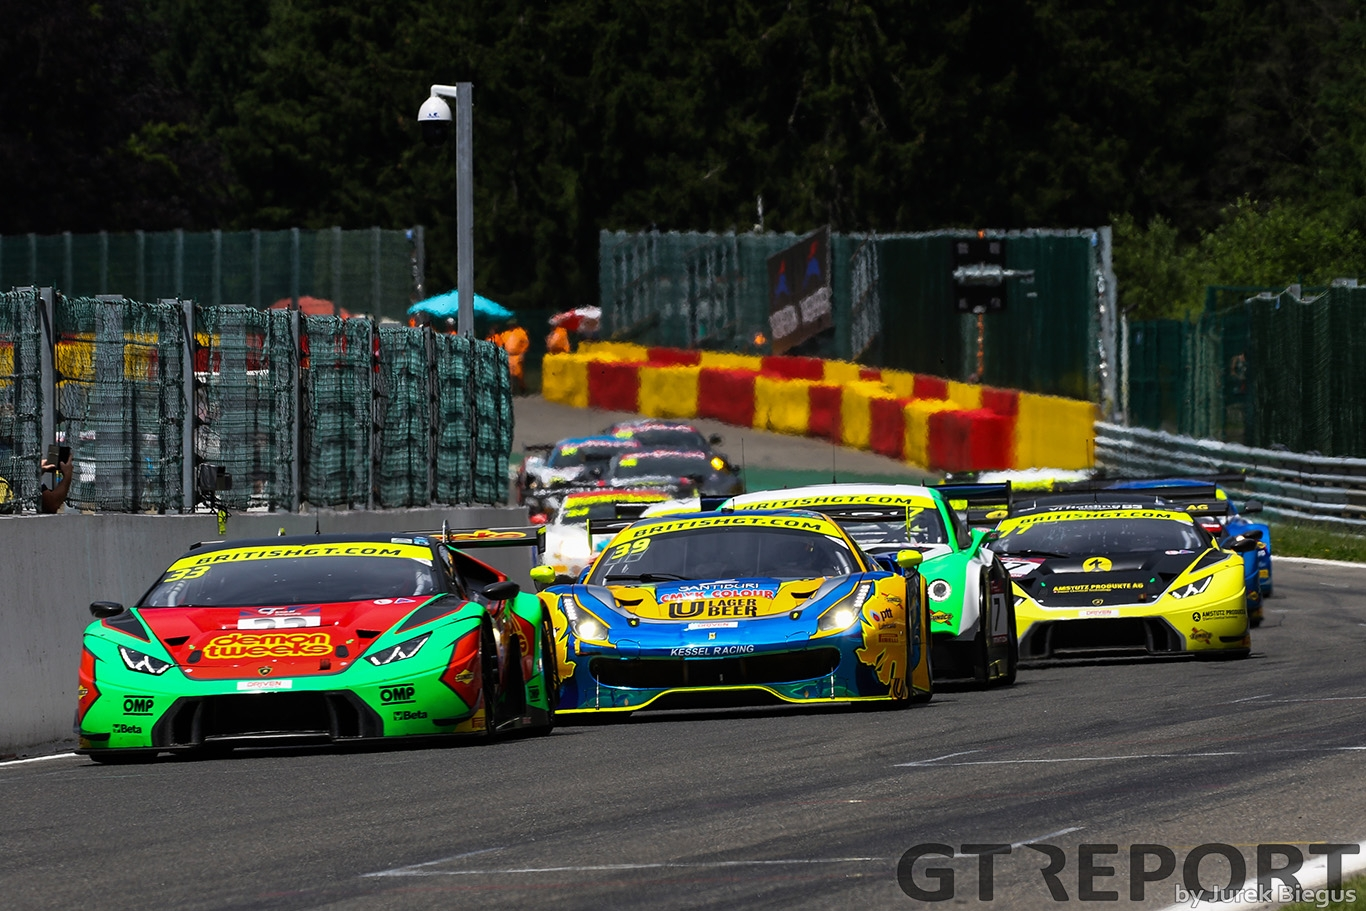 Barwell Motorsport Lamborghini Huracan GT3 with drivers Jon Minshaw & Phil Keen leads at the start of race 2 during the British GT Championship at Circuit de Spa-Francorchamps, Stavelot, Belgium on 8 July 2017. Photo by Jurek Biegus.